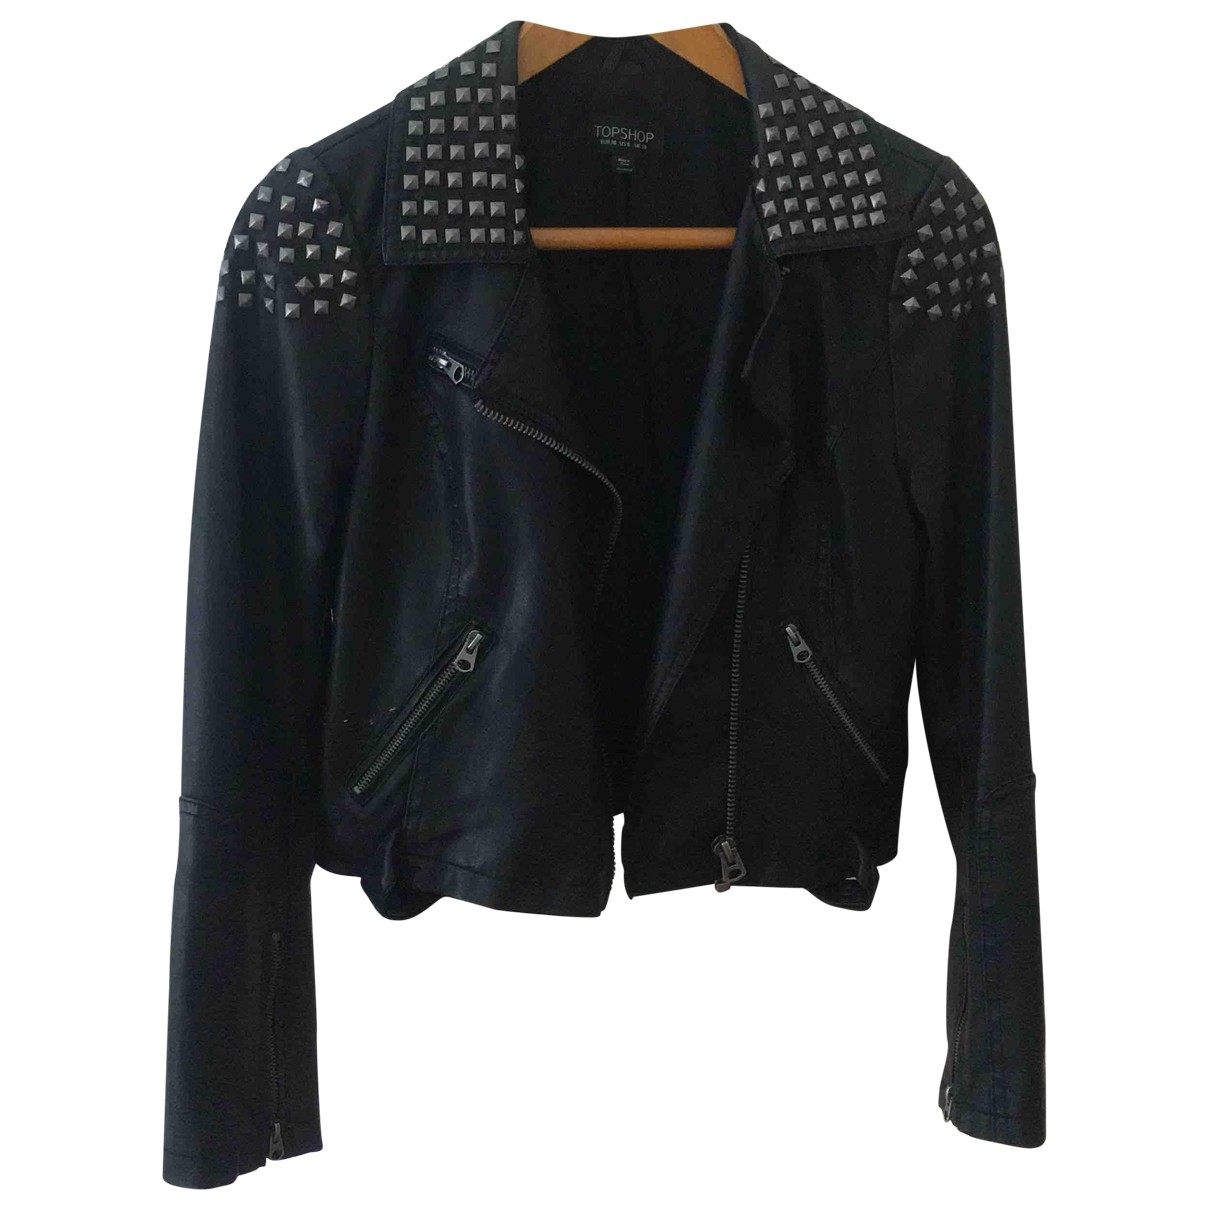 tophop \N Black Leather jacket for Women 10 UK